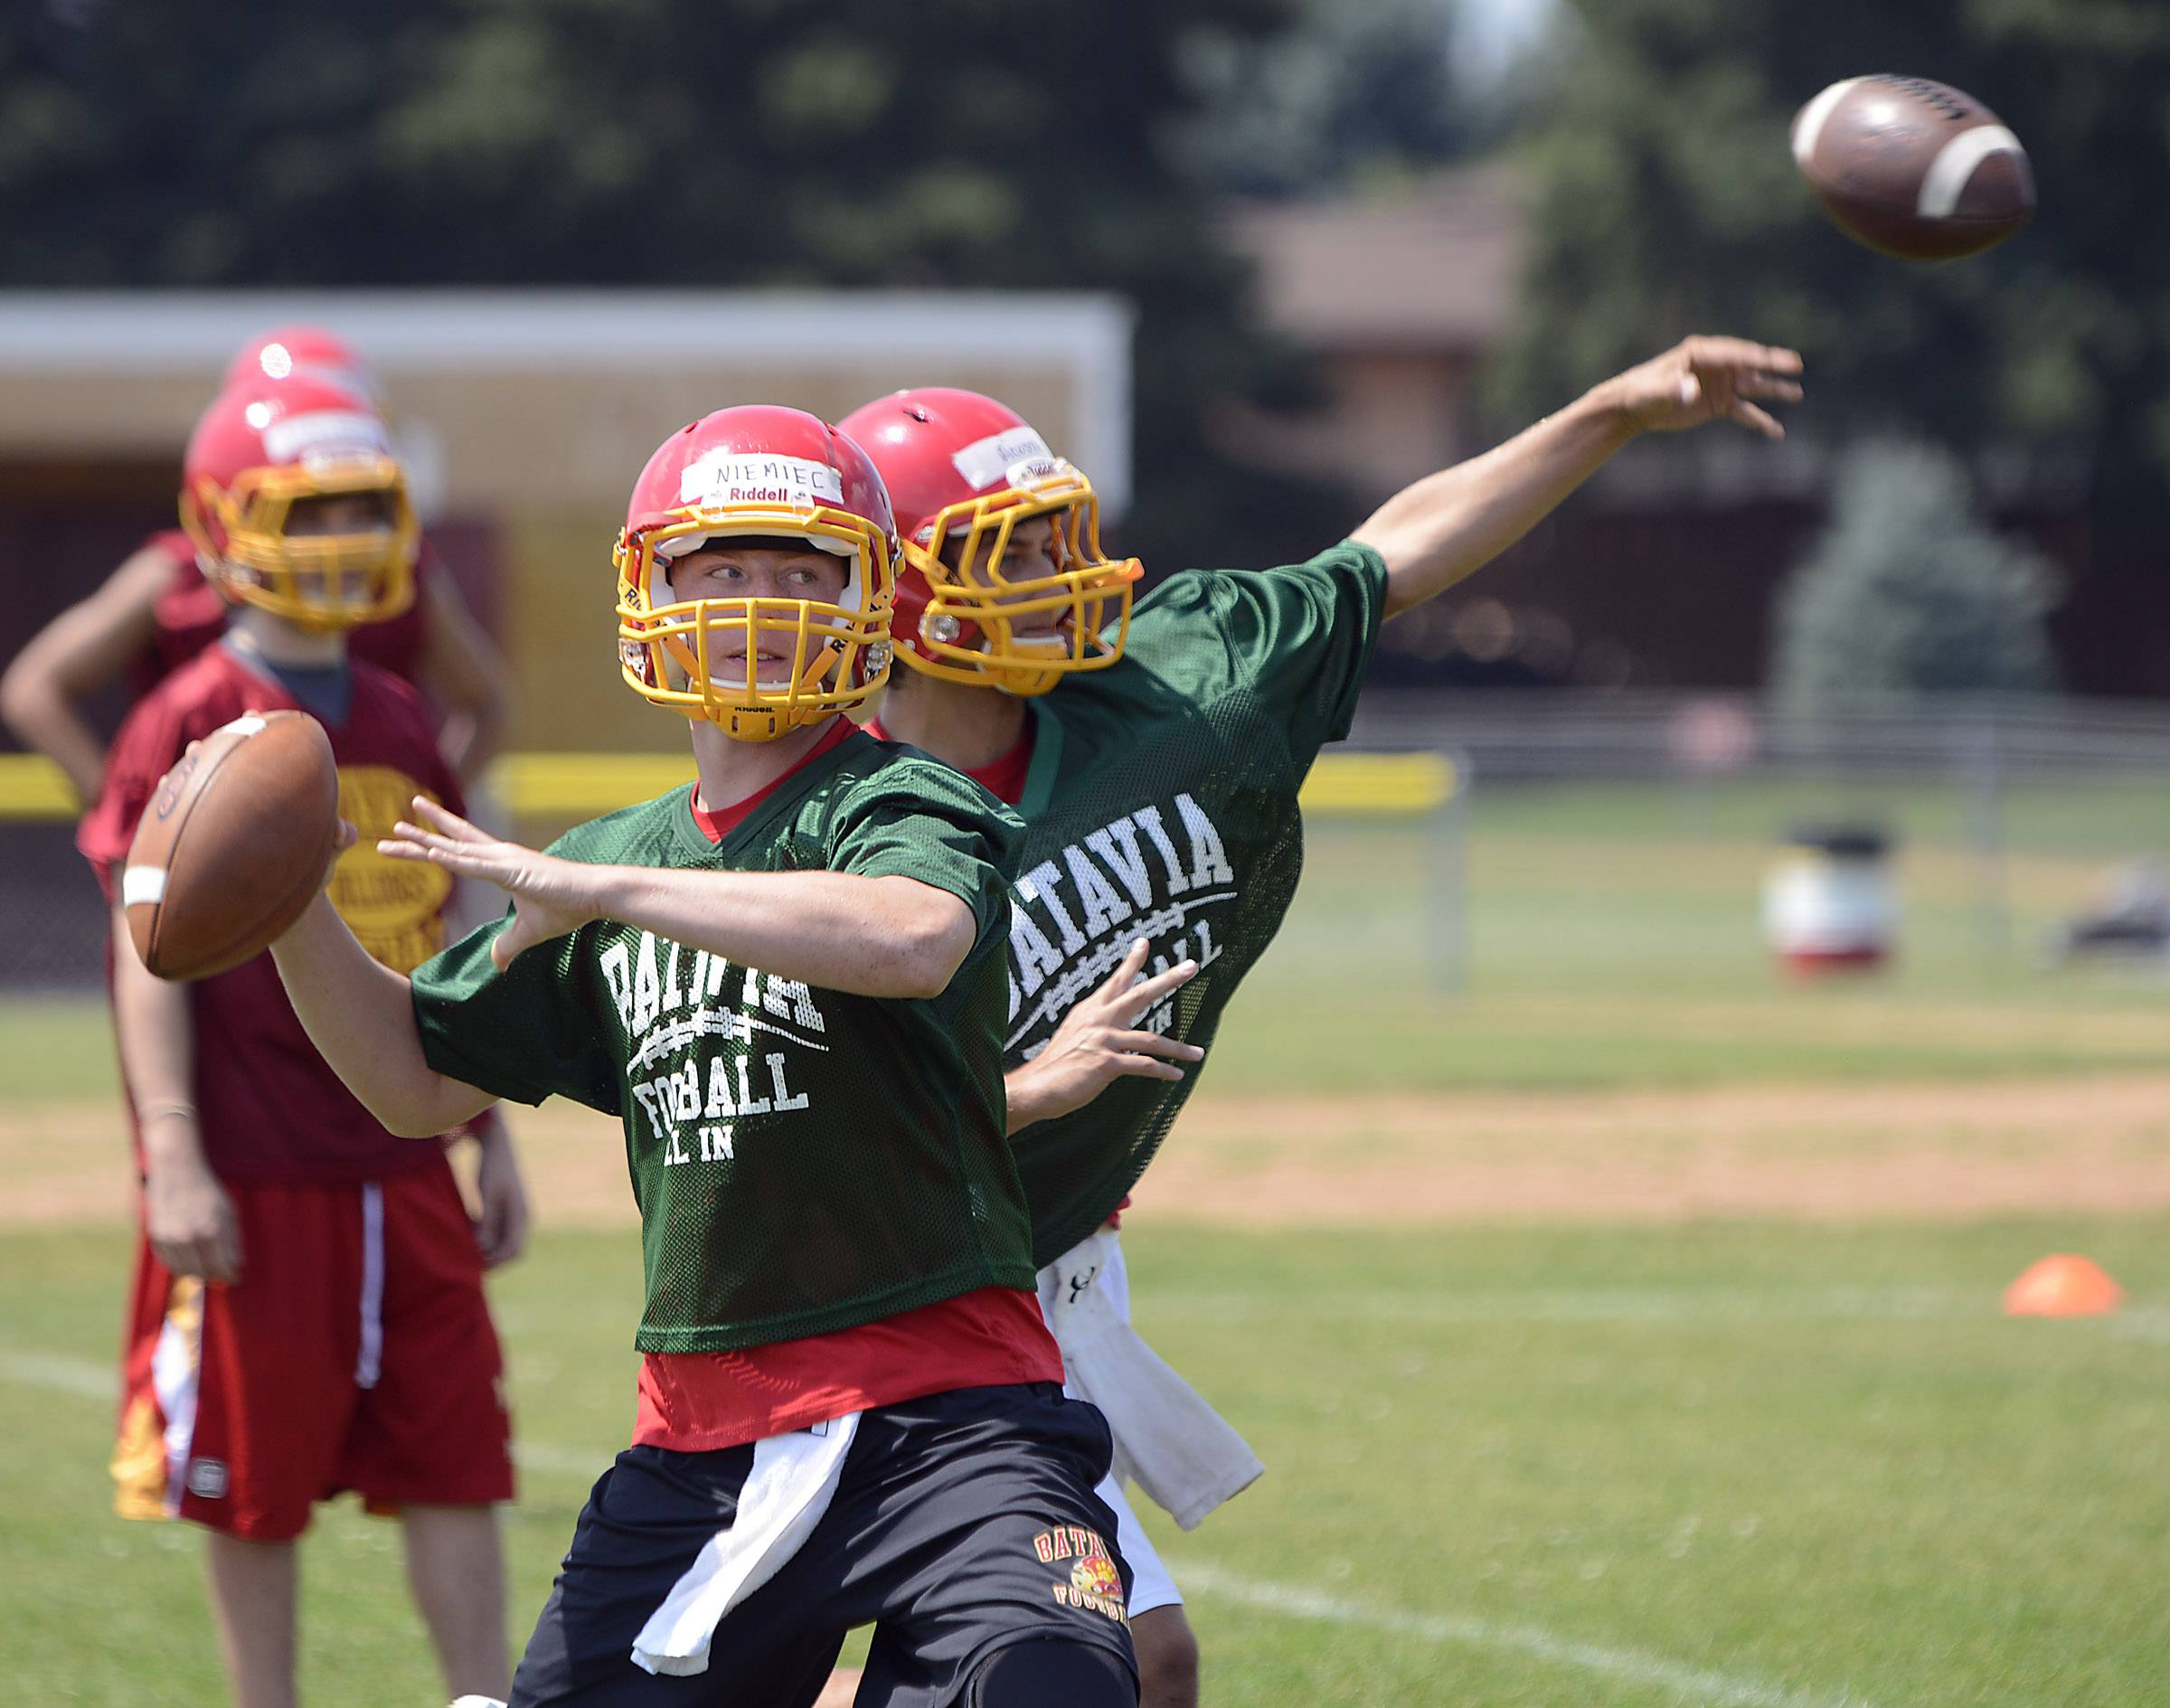 Quarterbacks Evan Acosta, right, and Kyle Niemiec, throw during Batavia High School football practice Monday.